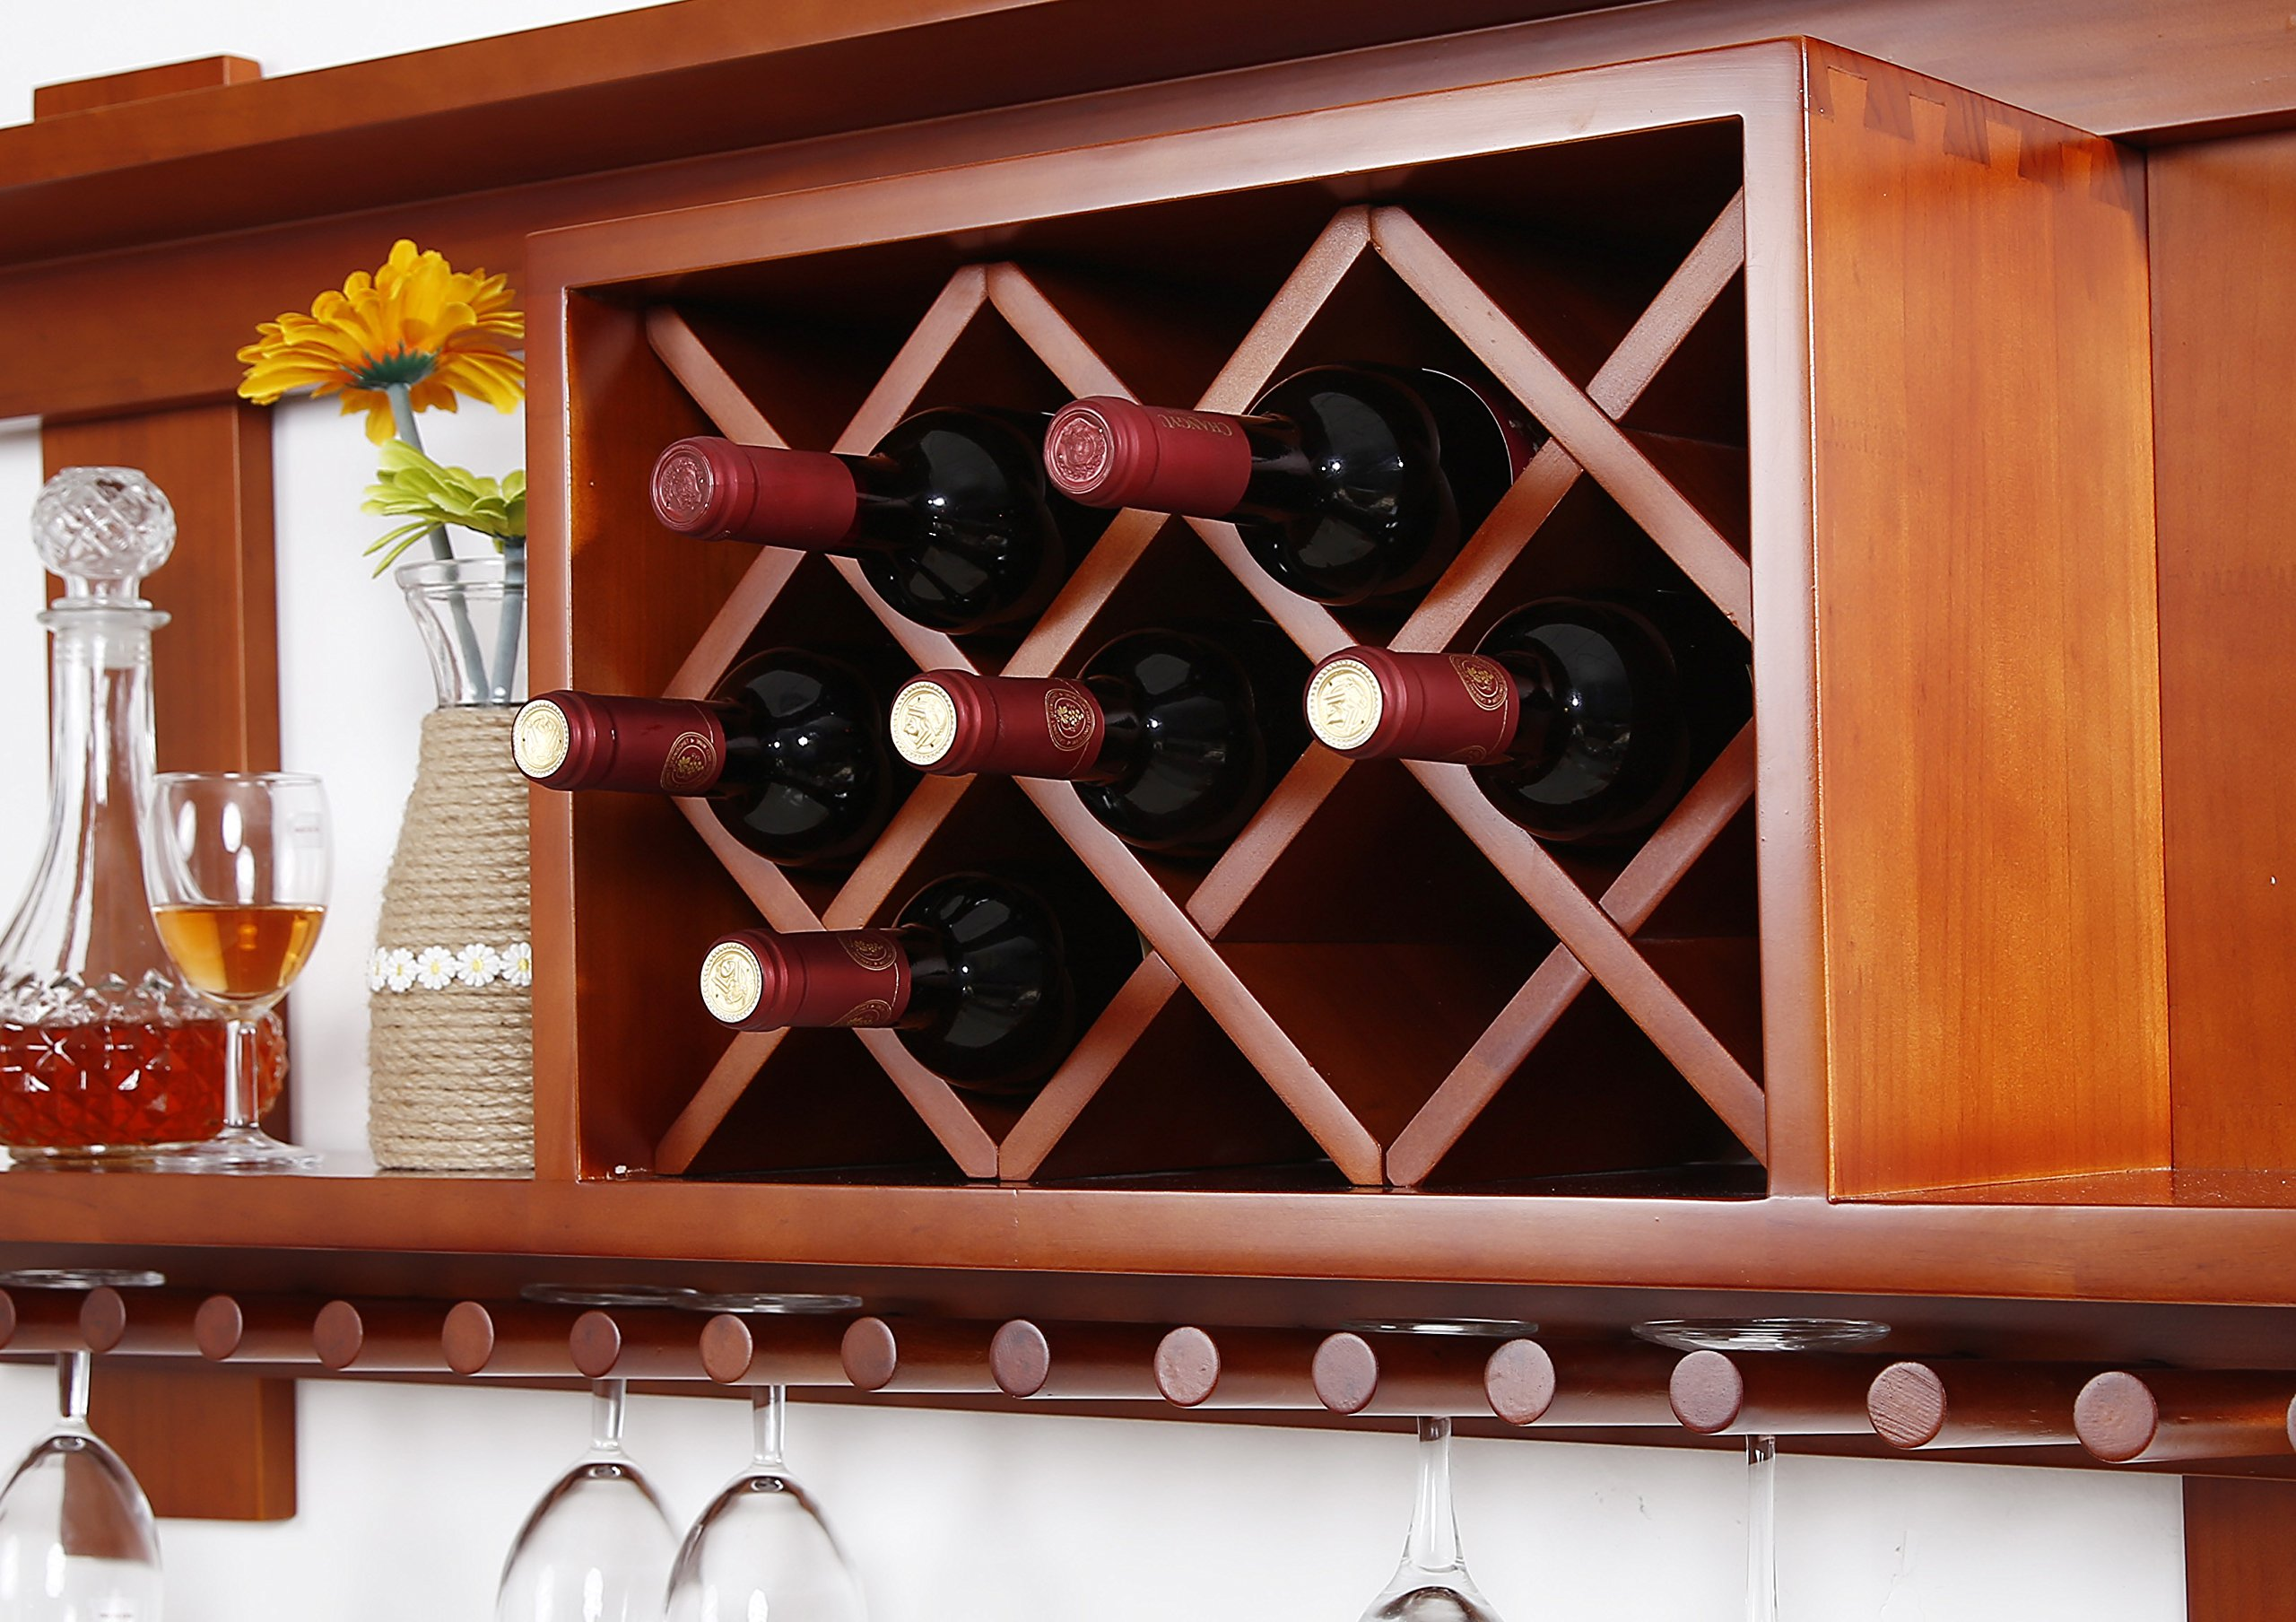 MallBoo Wall Mounted Wine Rack /Cabinet Pine Wood Wine Shelf with Glass Holders and Bottle Grids for Wall Decor/Art, 63-inch, Walnut by MallBoo